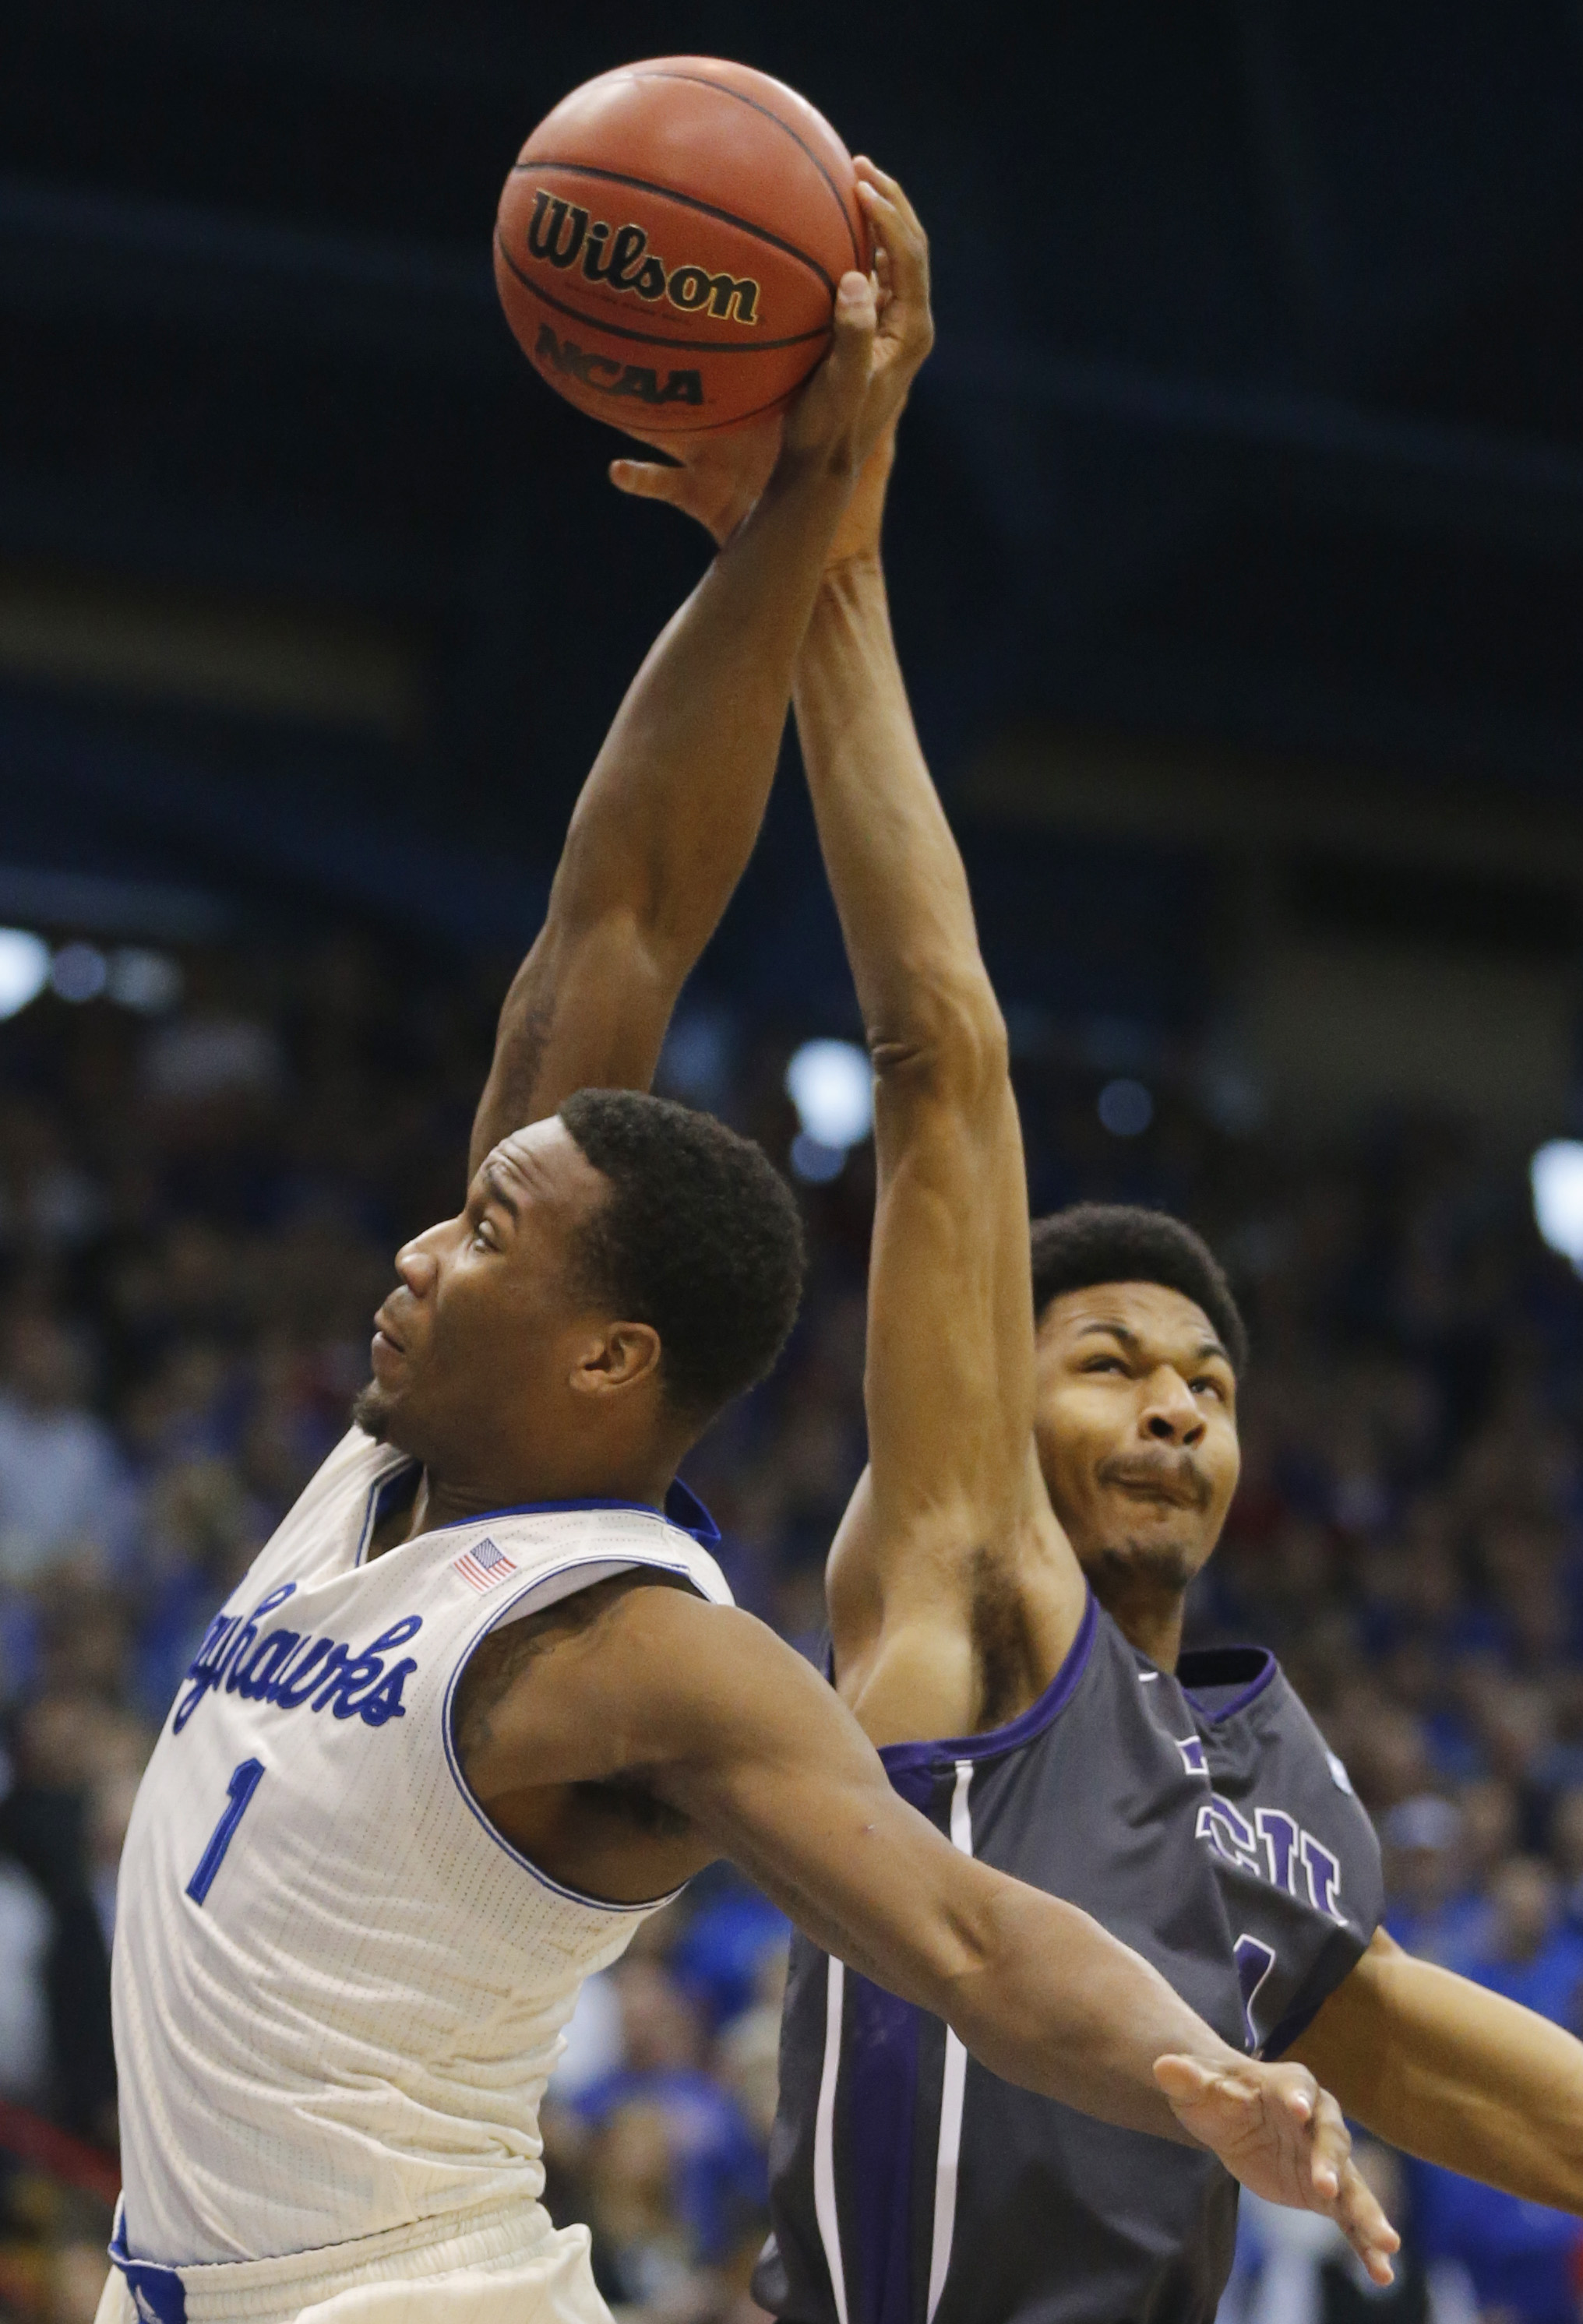 Kansas guard Wayne Selden Jr., left, is fouled by TCU center Karviar Shepherd, right, during the first half of an NCAA college basketball game in Lawrence, Kan., Saturday, Feb. 15, 2014